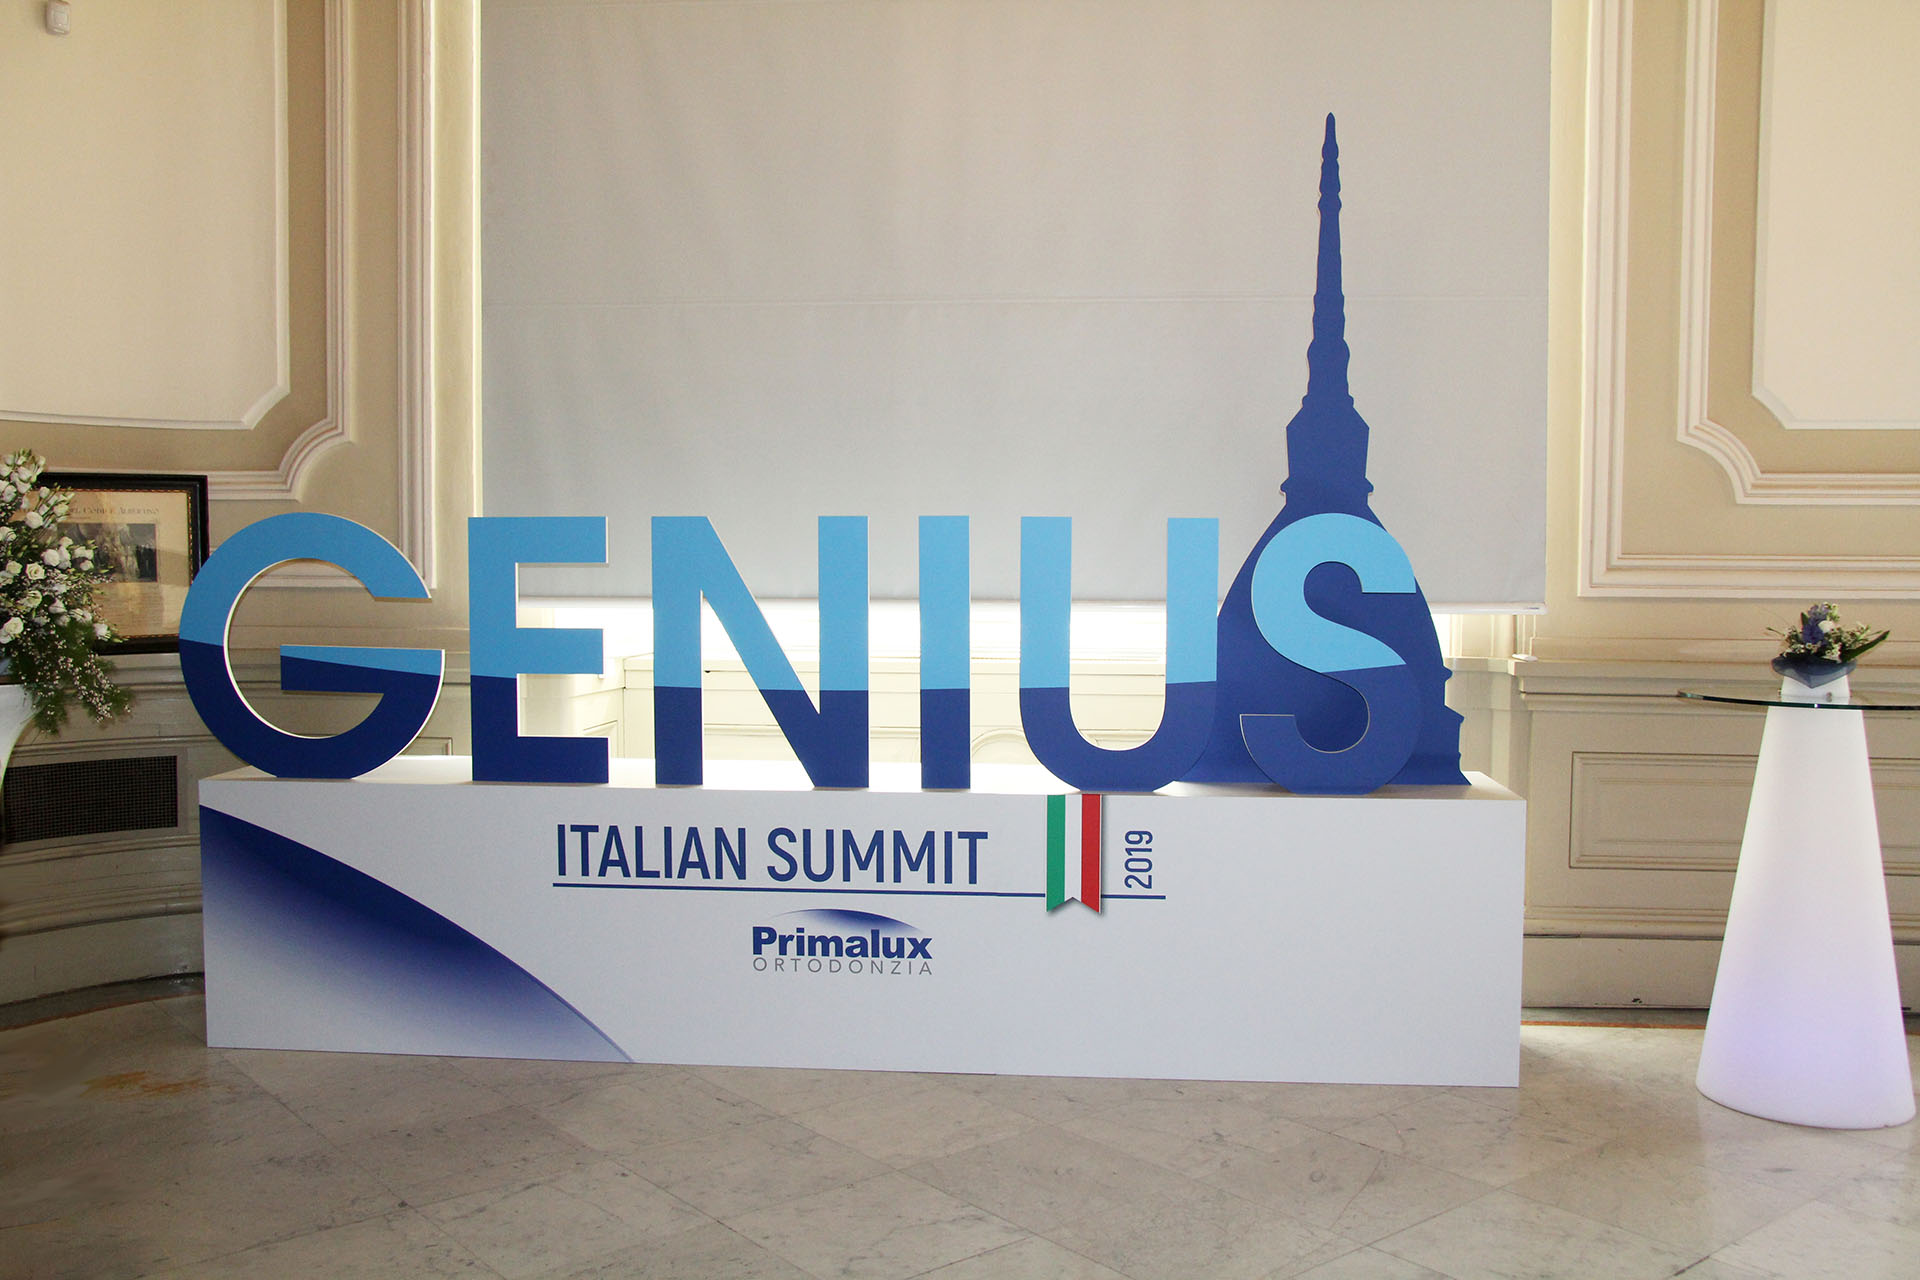 Genius Italian Summit 2019